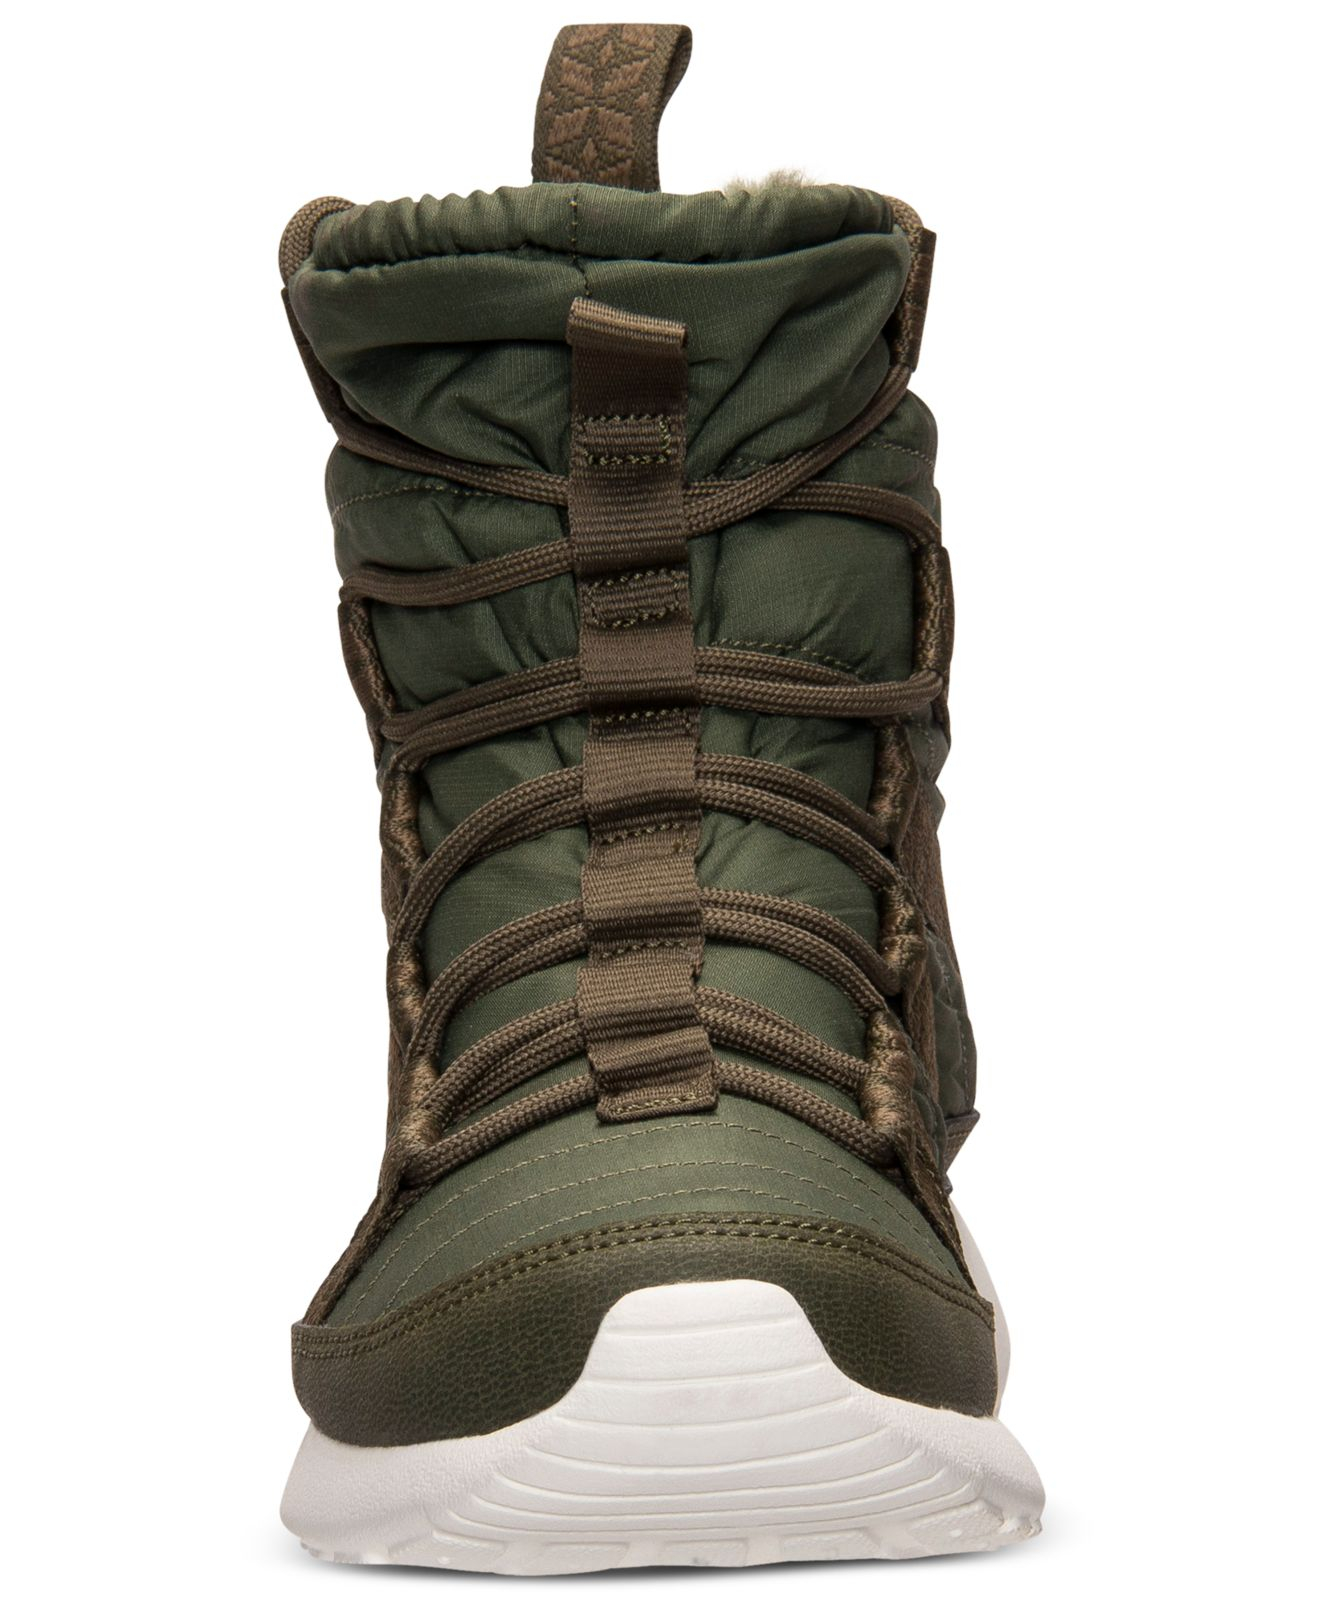 1442a2760fd2 Lyst - Nike Women S Roshe Run Hi Sneakerboots From Finish Line in Green